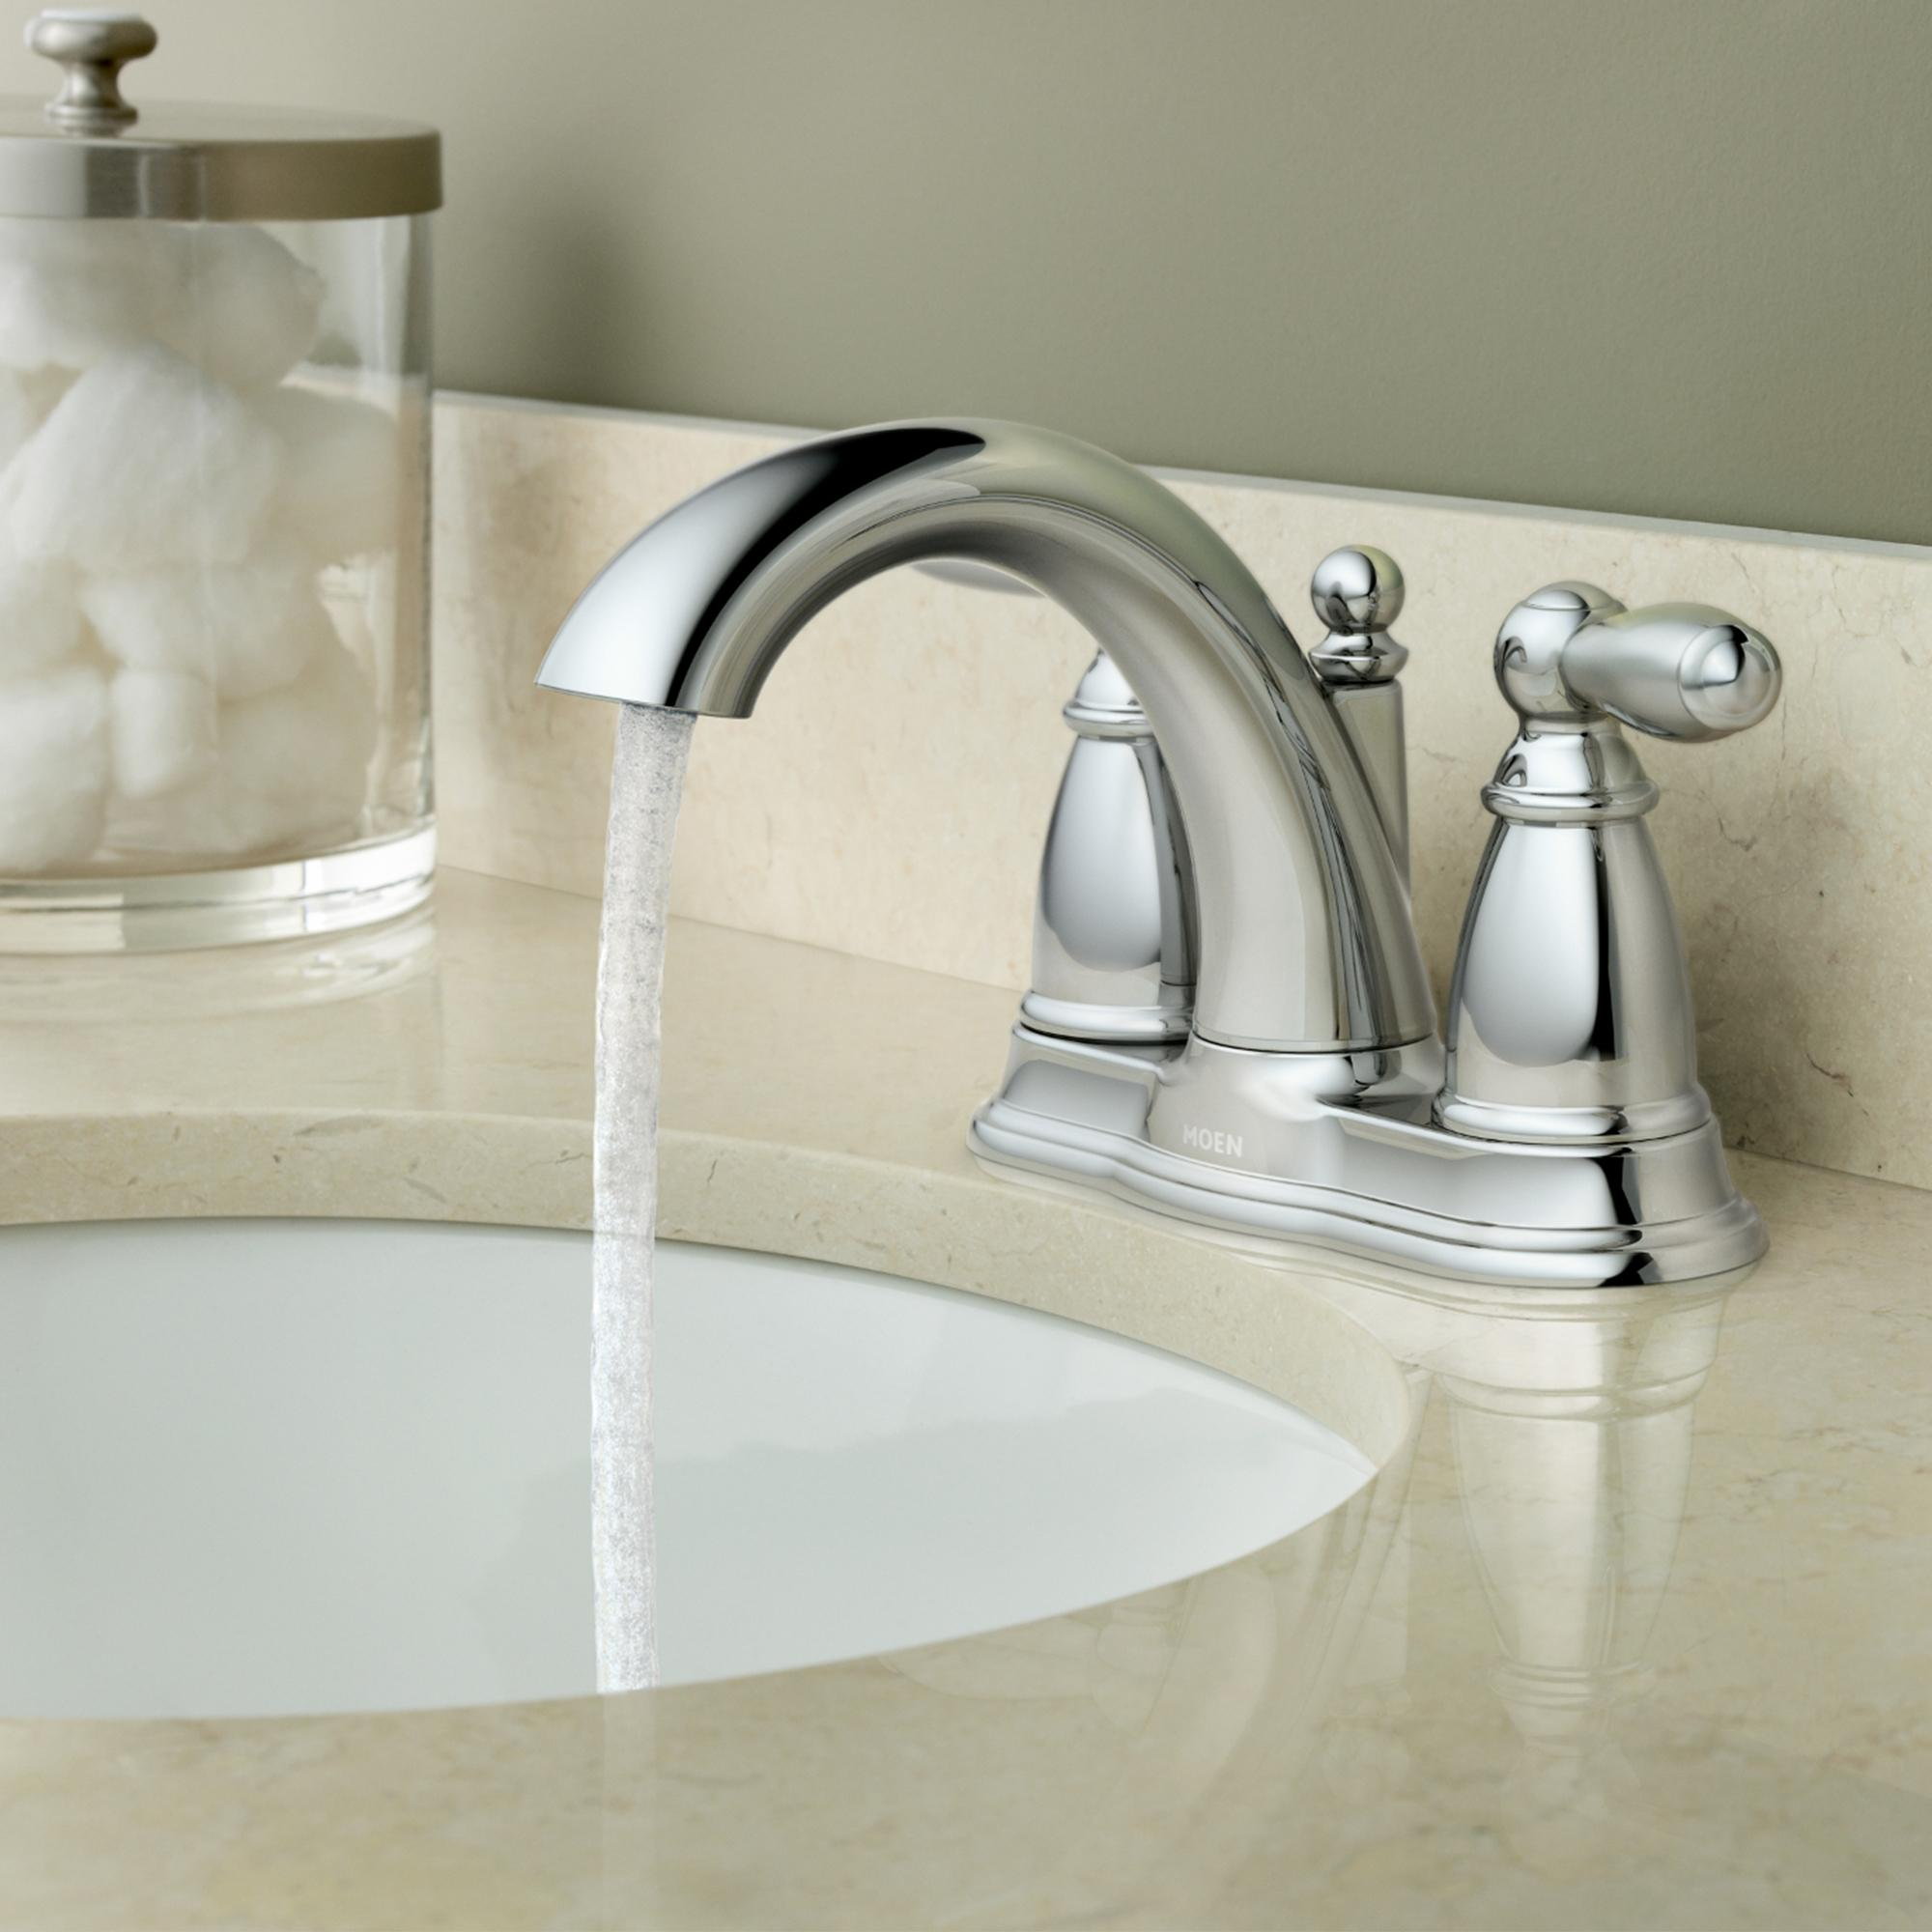 Best faucets for bathrooms - View Larger